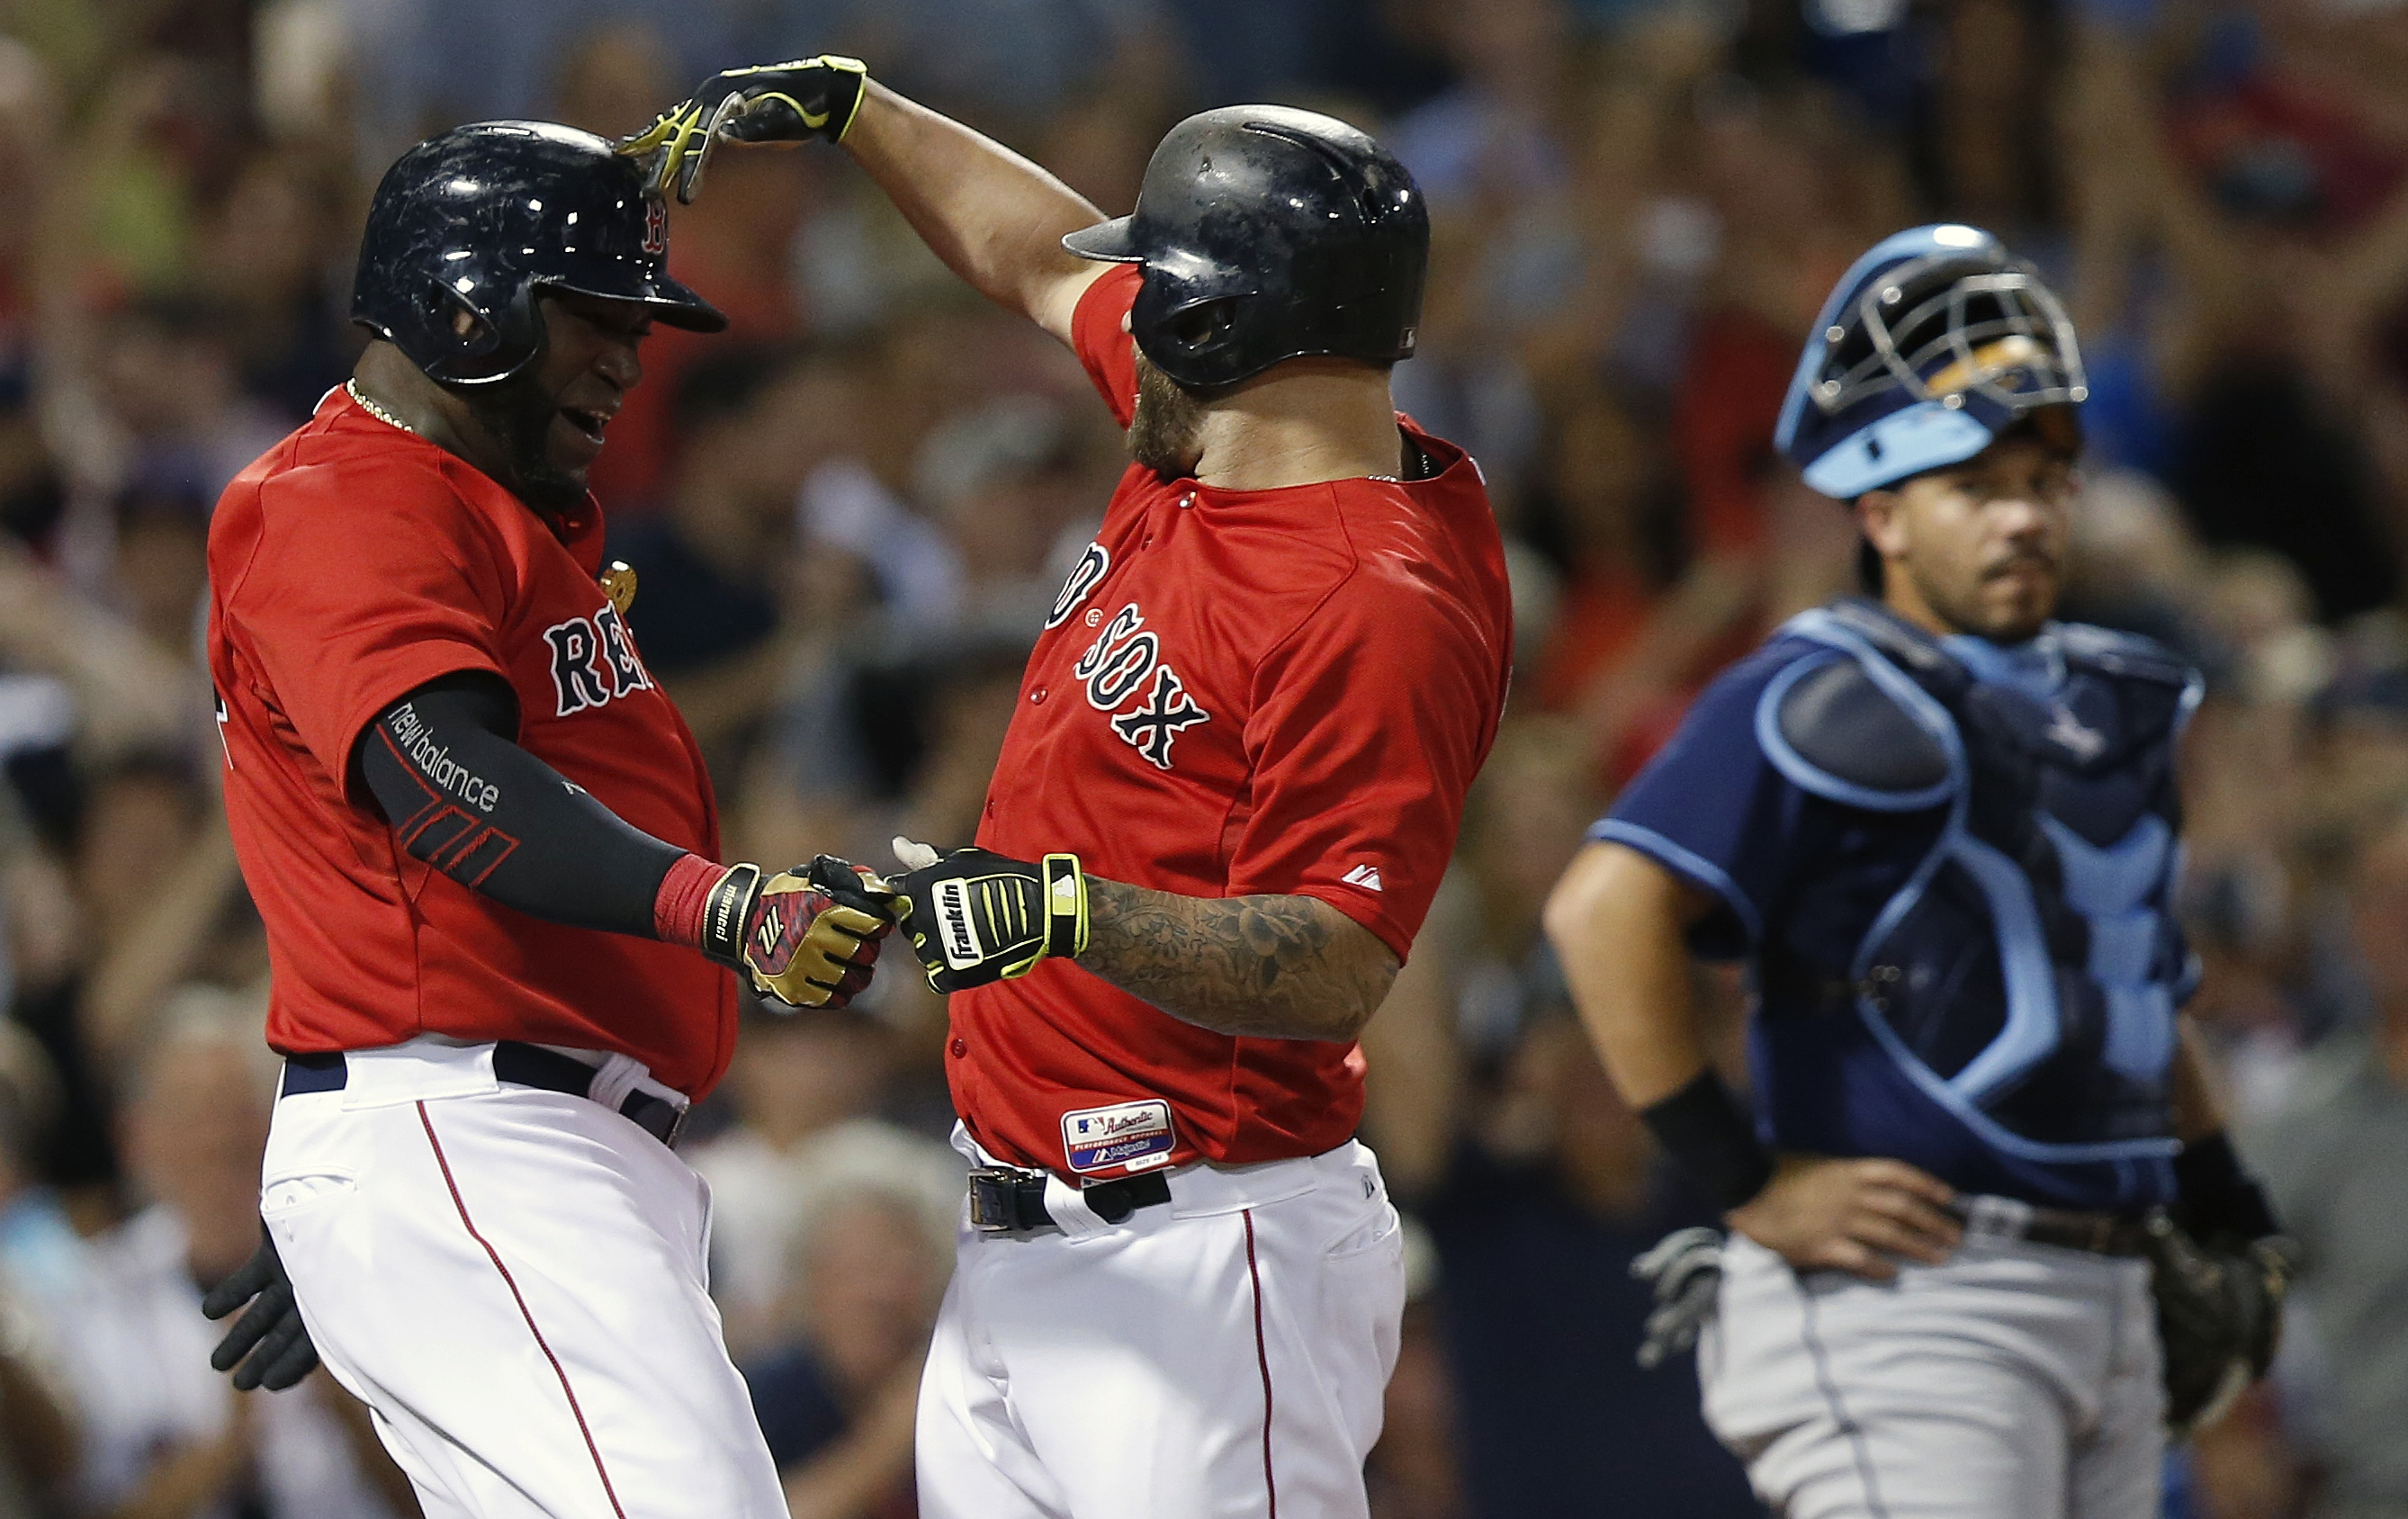 Boston Red Sox's Mike Napoli, center, celebrates his two-run home run that also drove in David Ortiz, left, as Tampa Bay Rays' Curt Casali, right, looks on during the seventh inning of a baseball game in Boston, Friday, July 31, 2015. (AP Photo/Michael Dw